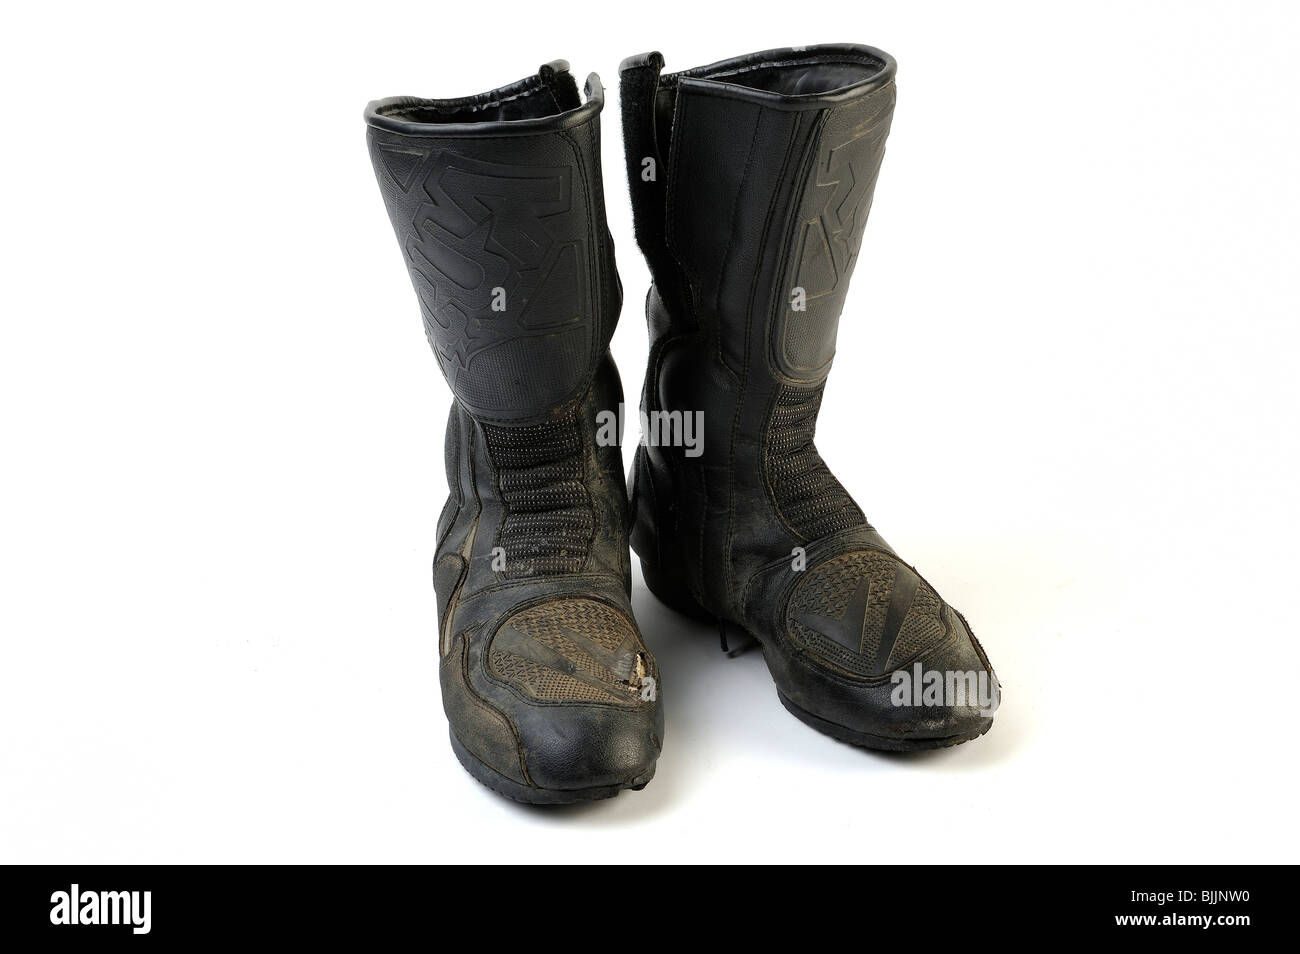 Well worn set of motorcycle boots - Stock Image